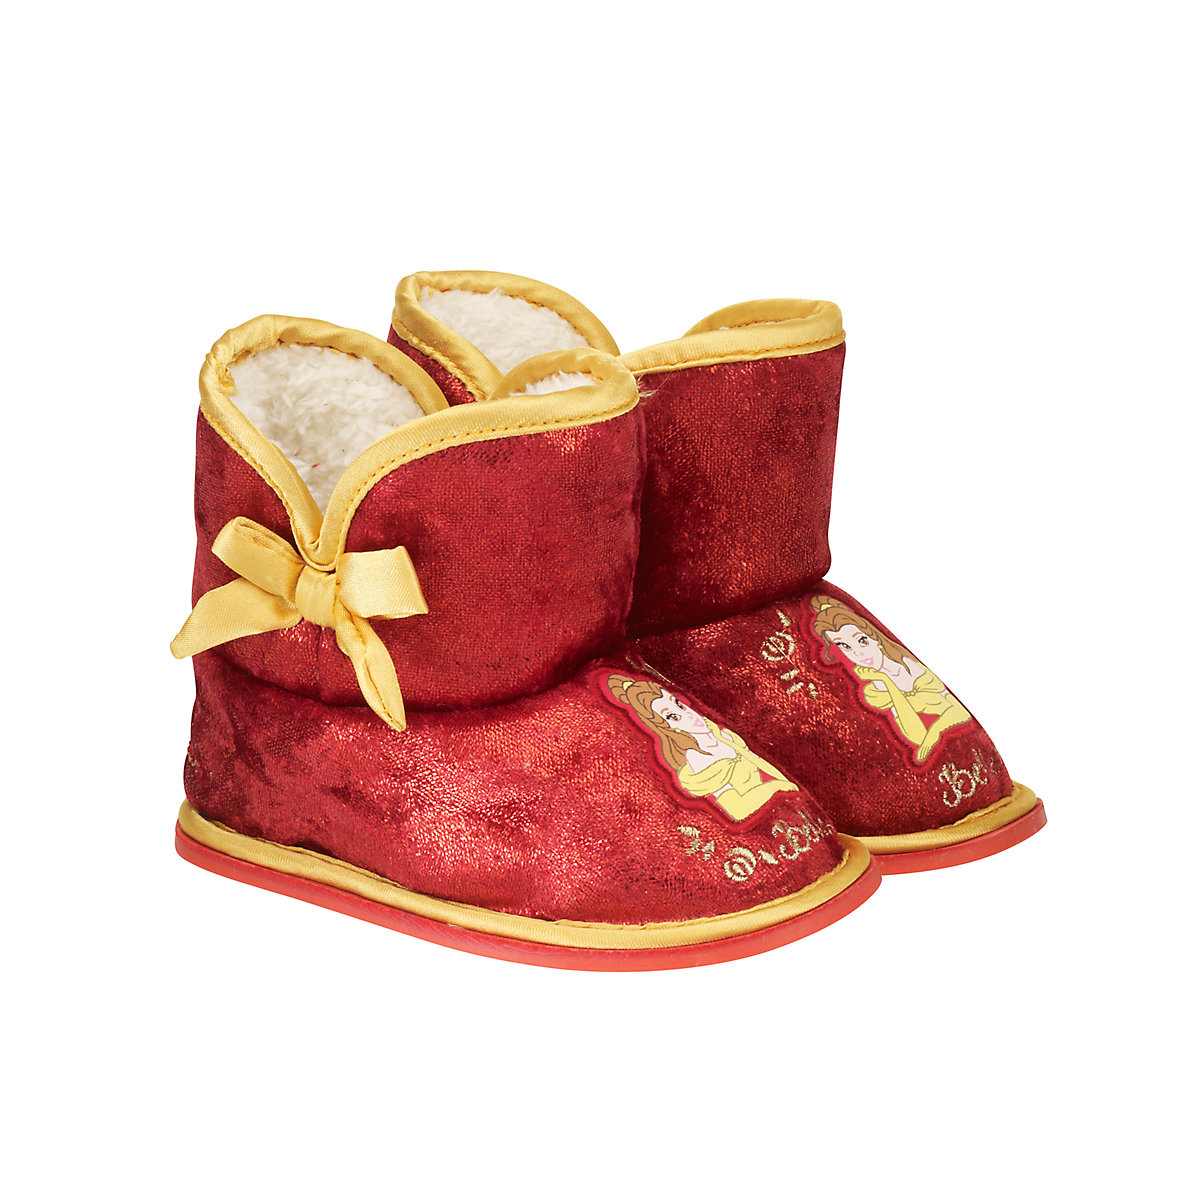 Disney Princess Belle Bootees - Disney Princess Gifts